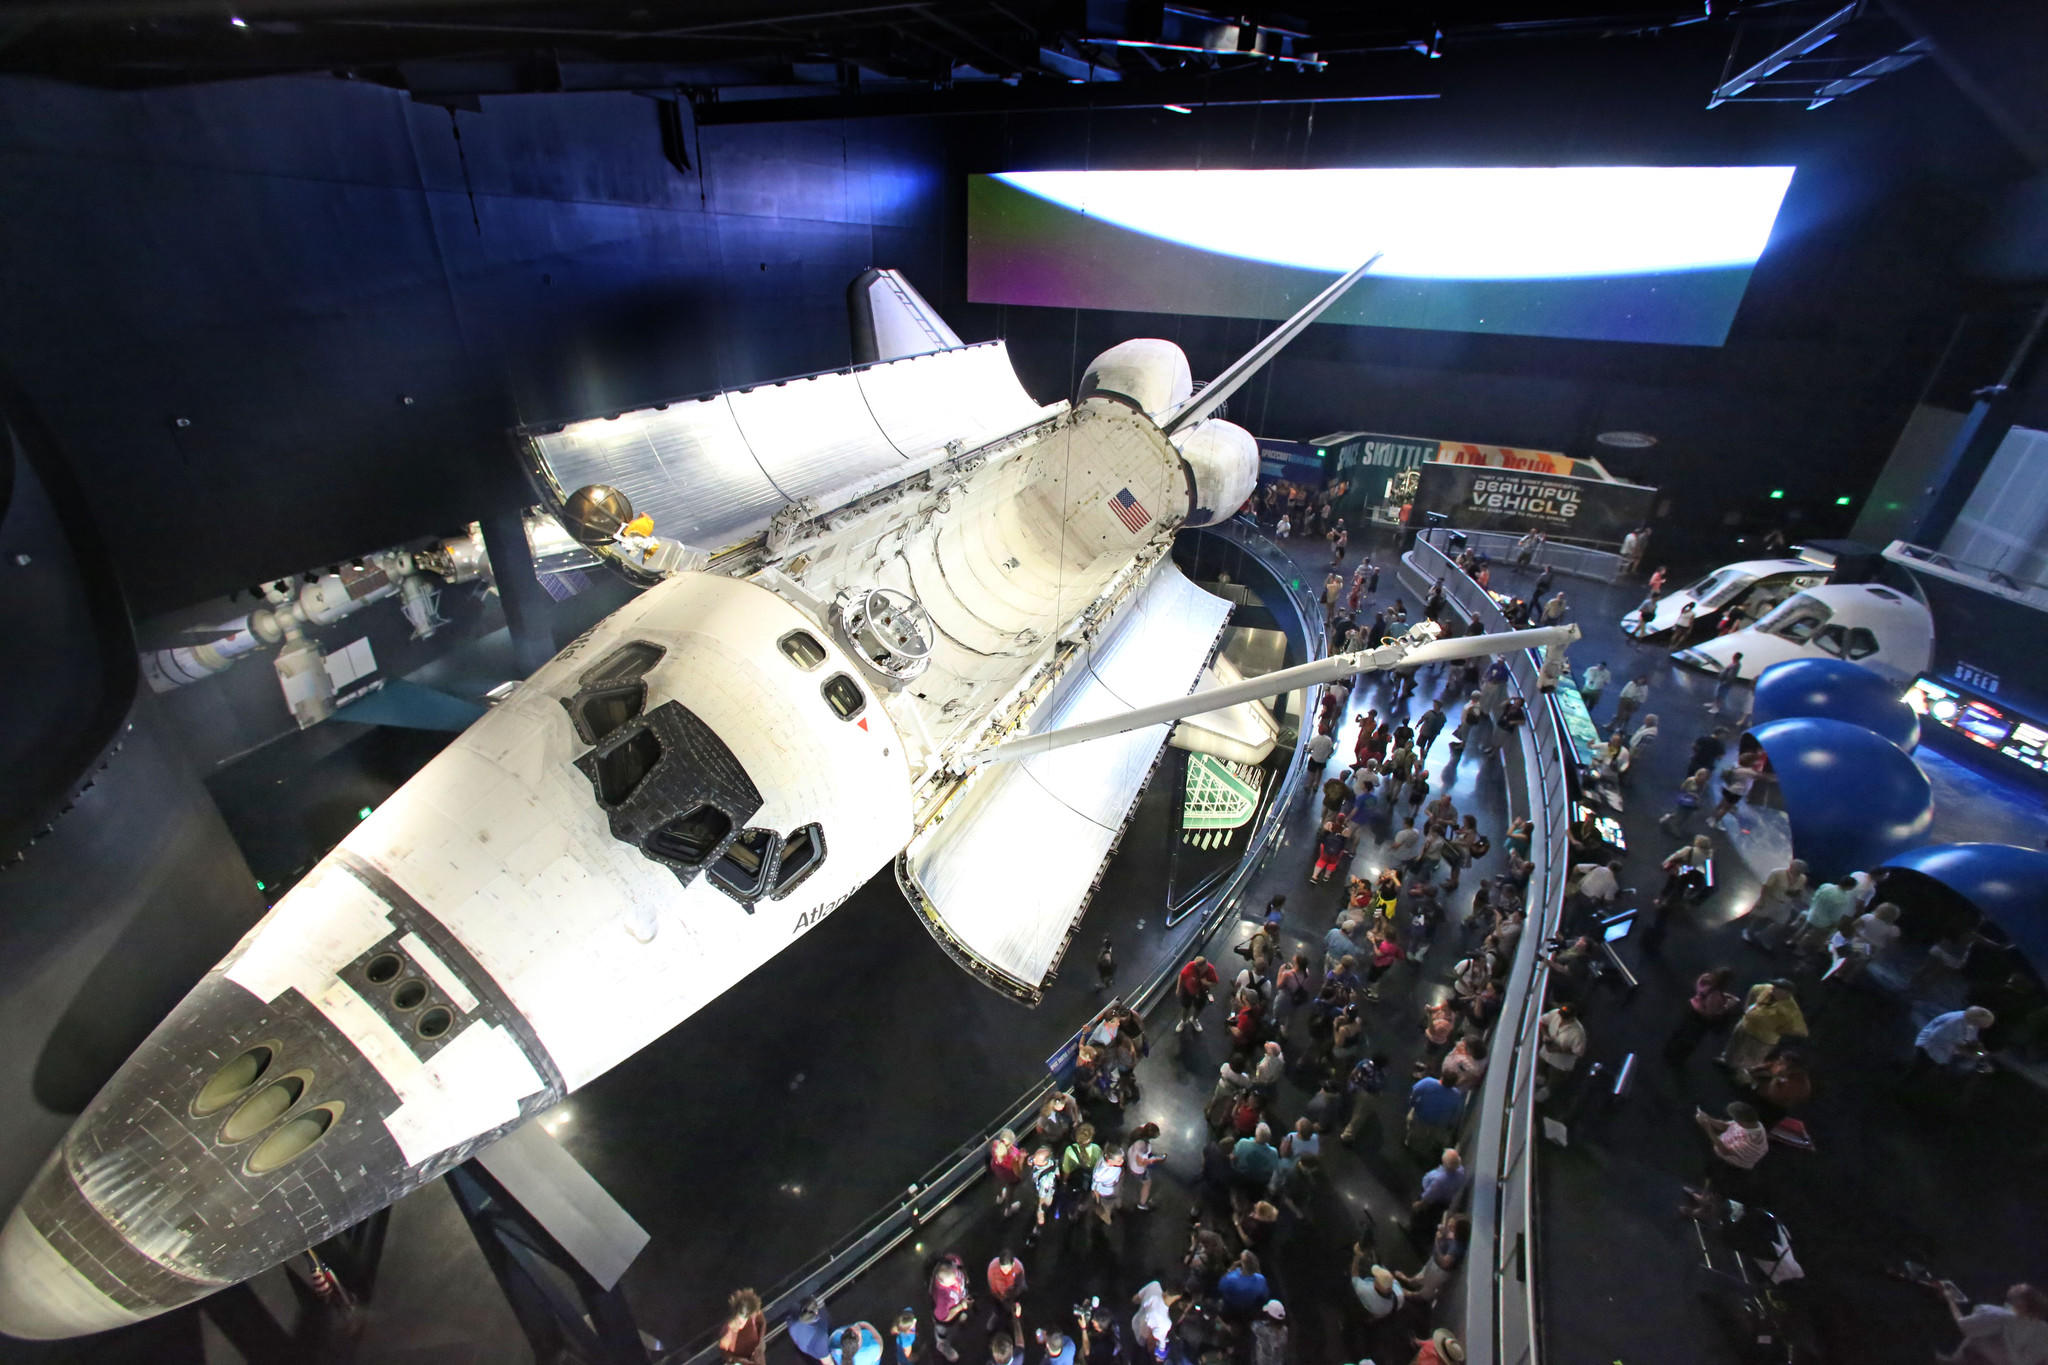 Atlantis, the orbiter that made the final flight of NASA's shuttle program, in the new $100-million home created for it at the Kennedy Space Center Visitor Complex.